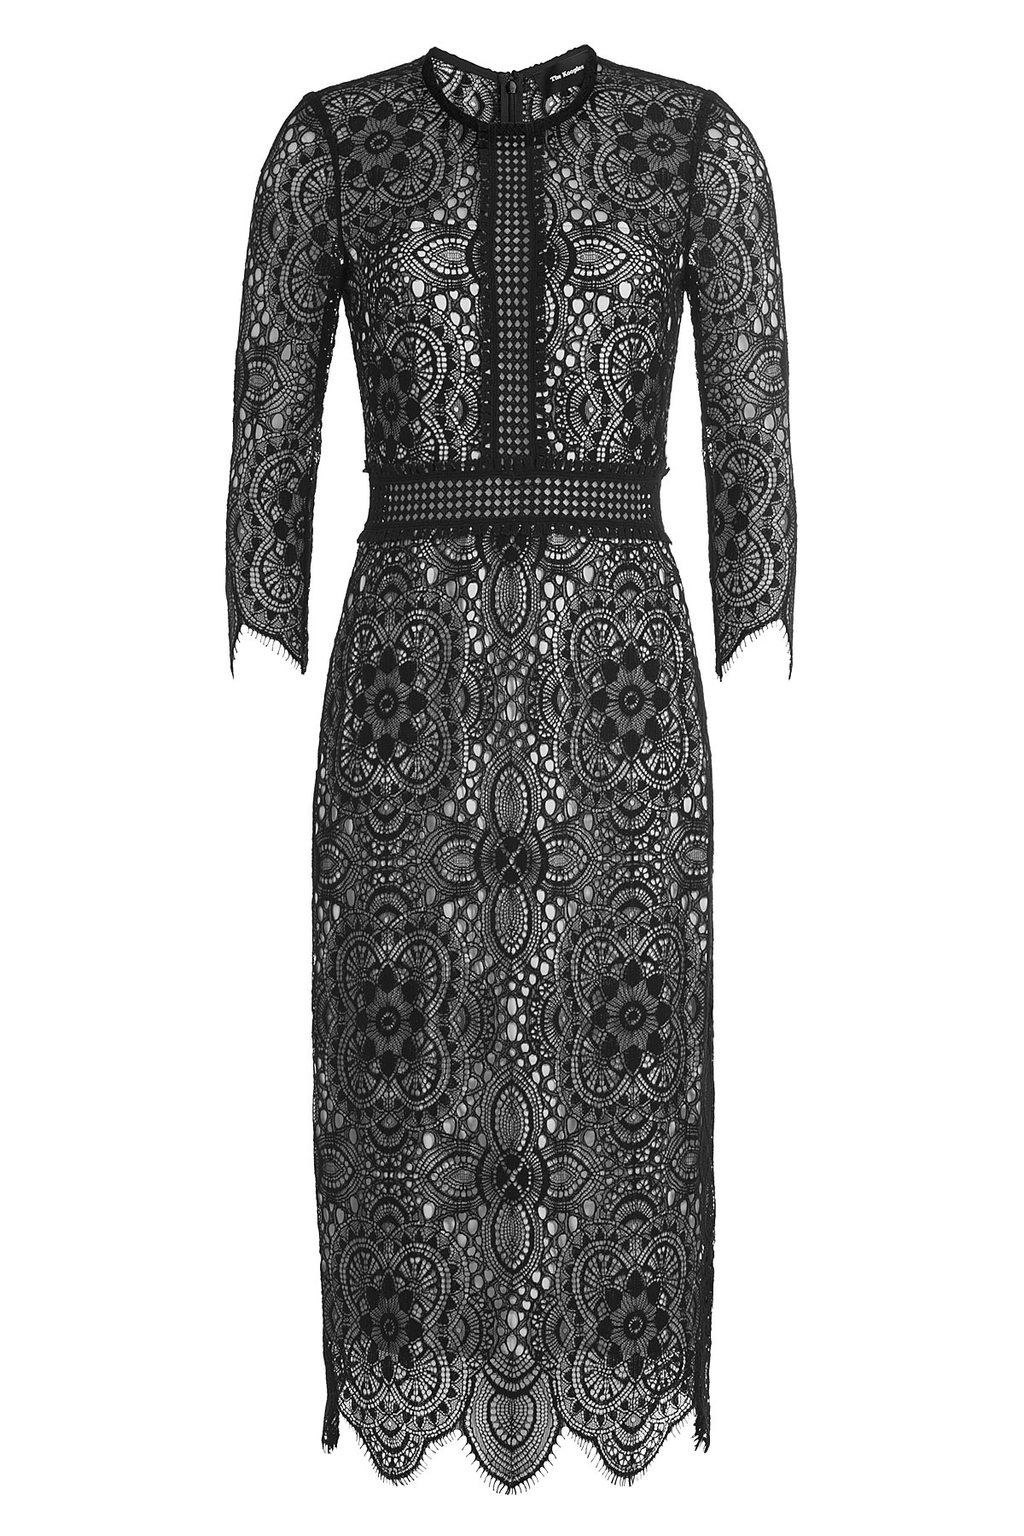 Lace Dress With Contrast Lining Black - style: shift; length: below the knee; pattern: plain; predominant colour: black; occasions: evening; fit: body skimming; fibres: cotton - mix; neckline: crew; sleeve length: 3/4 length; sleeve style: standard; texture group: lace; pattern type: fabric; season: a/w 2016